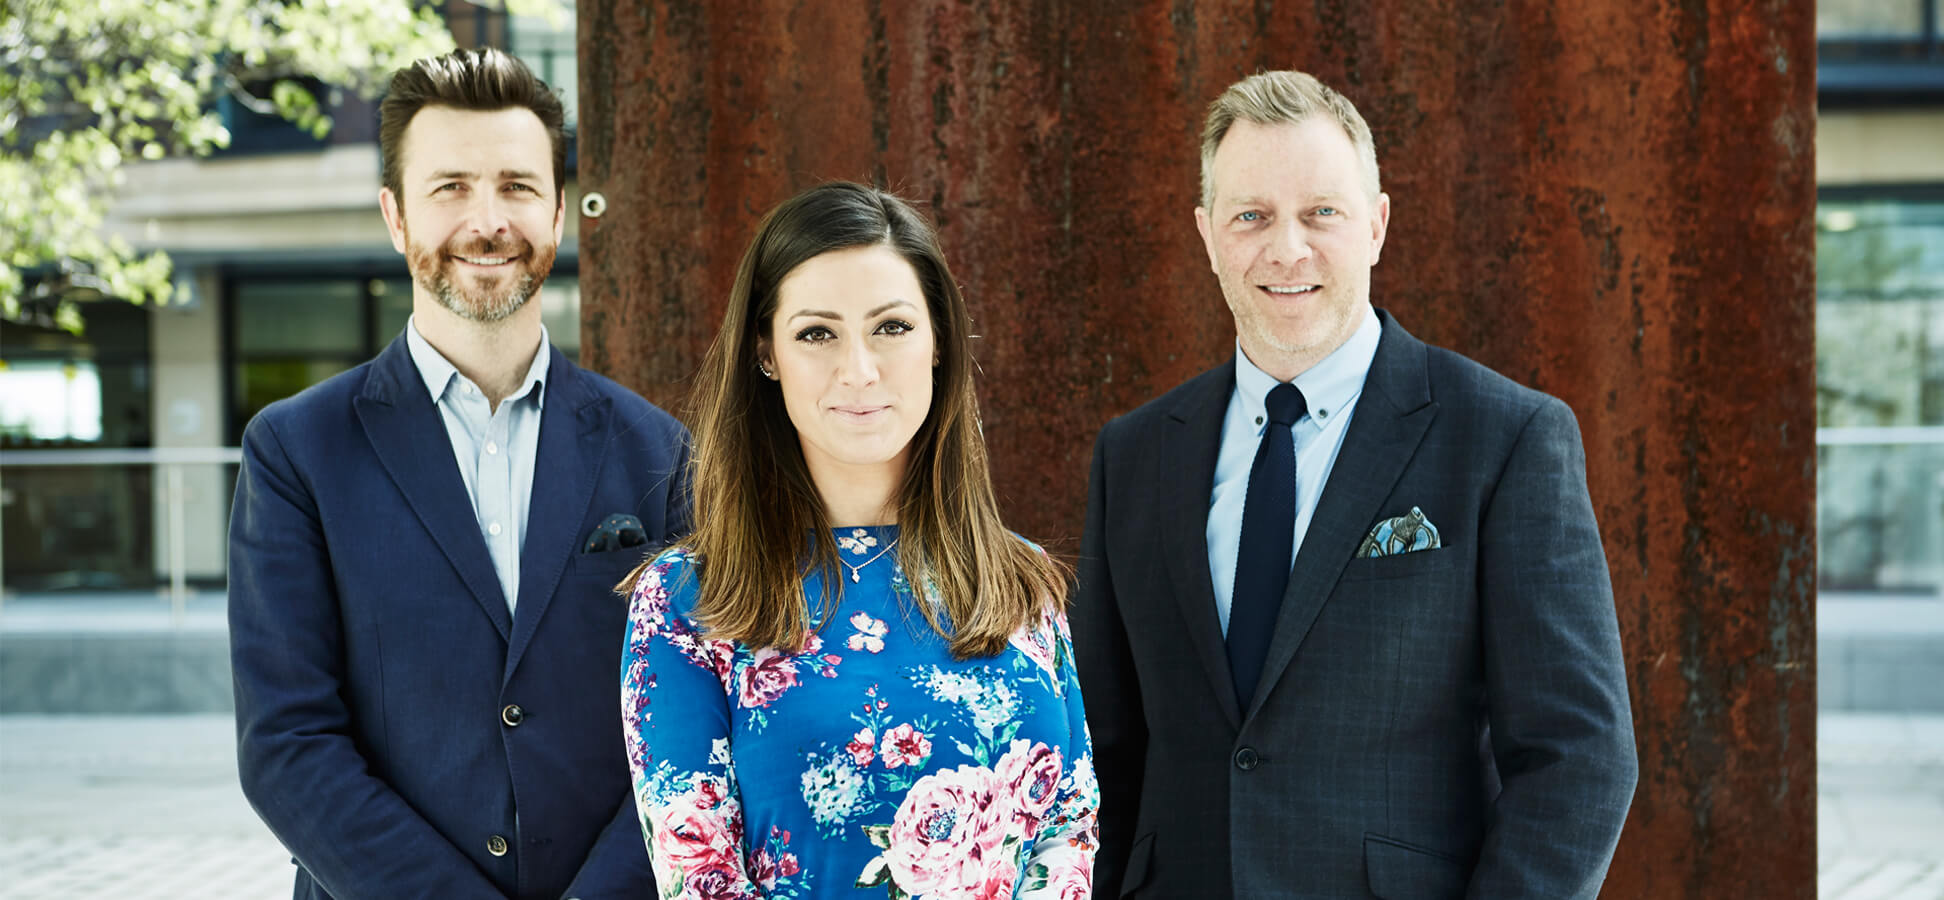 DS.Emotion acquires HC Advertising and moves London base